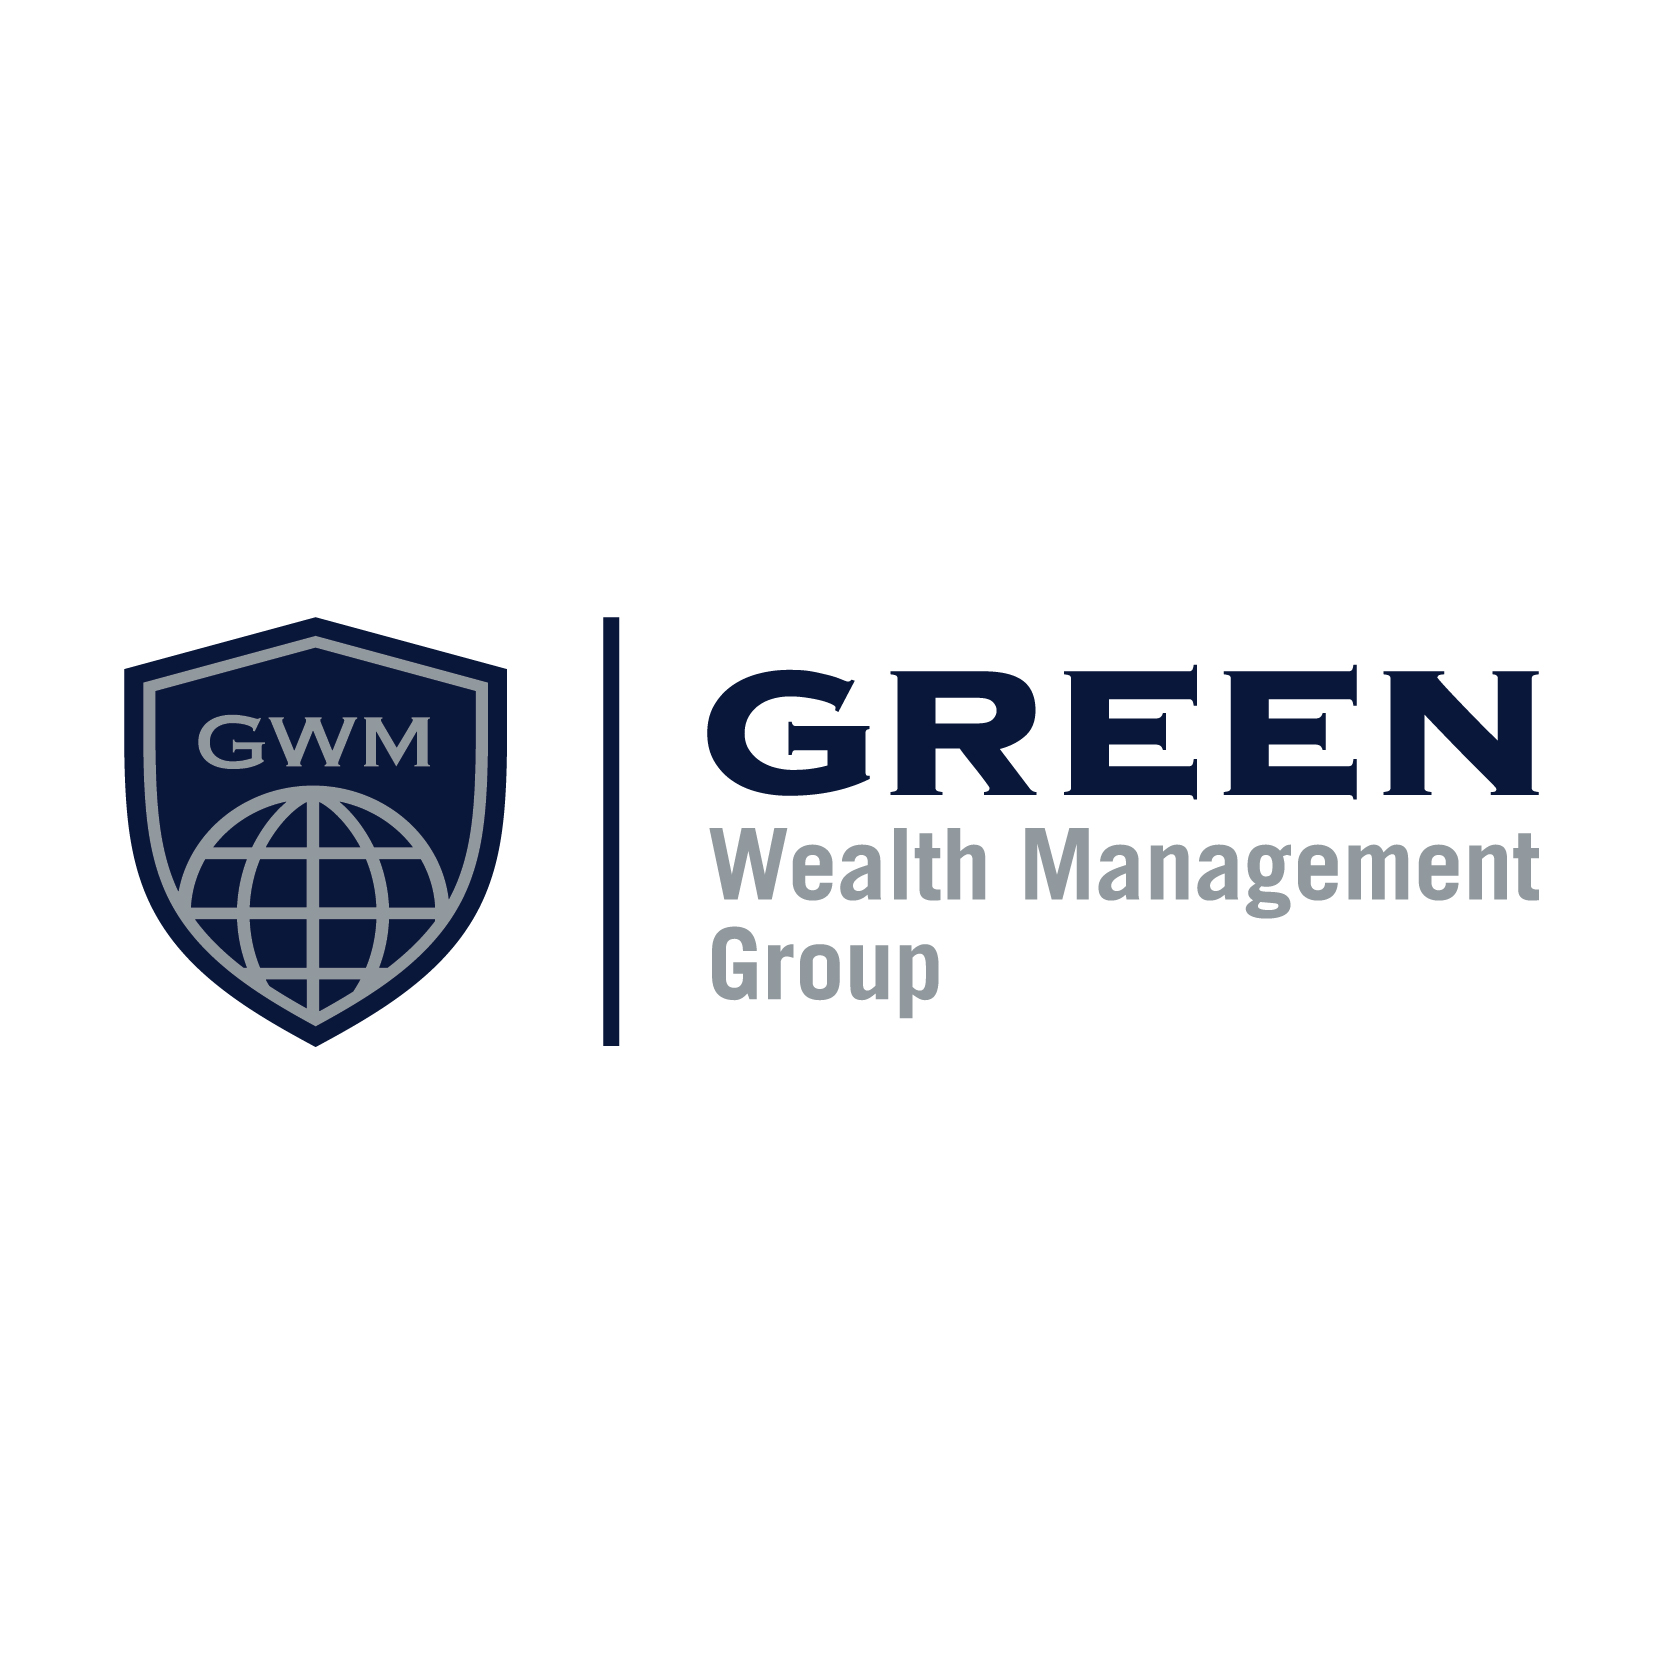 bullMarketing_GreenWealthManagementGroupBranding-02.jpg